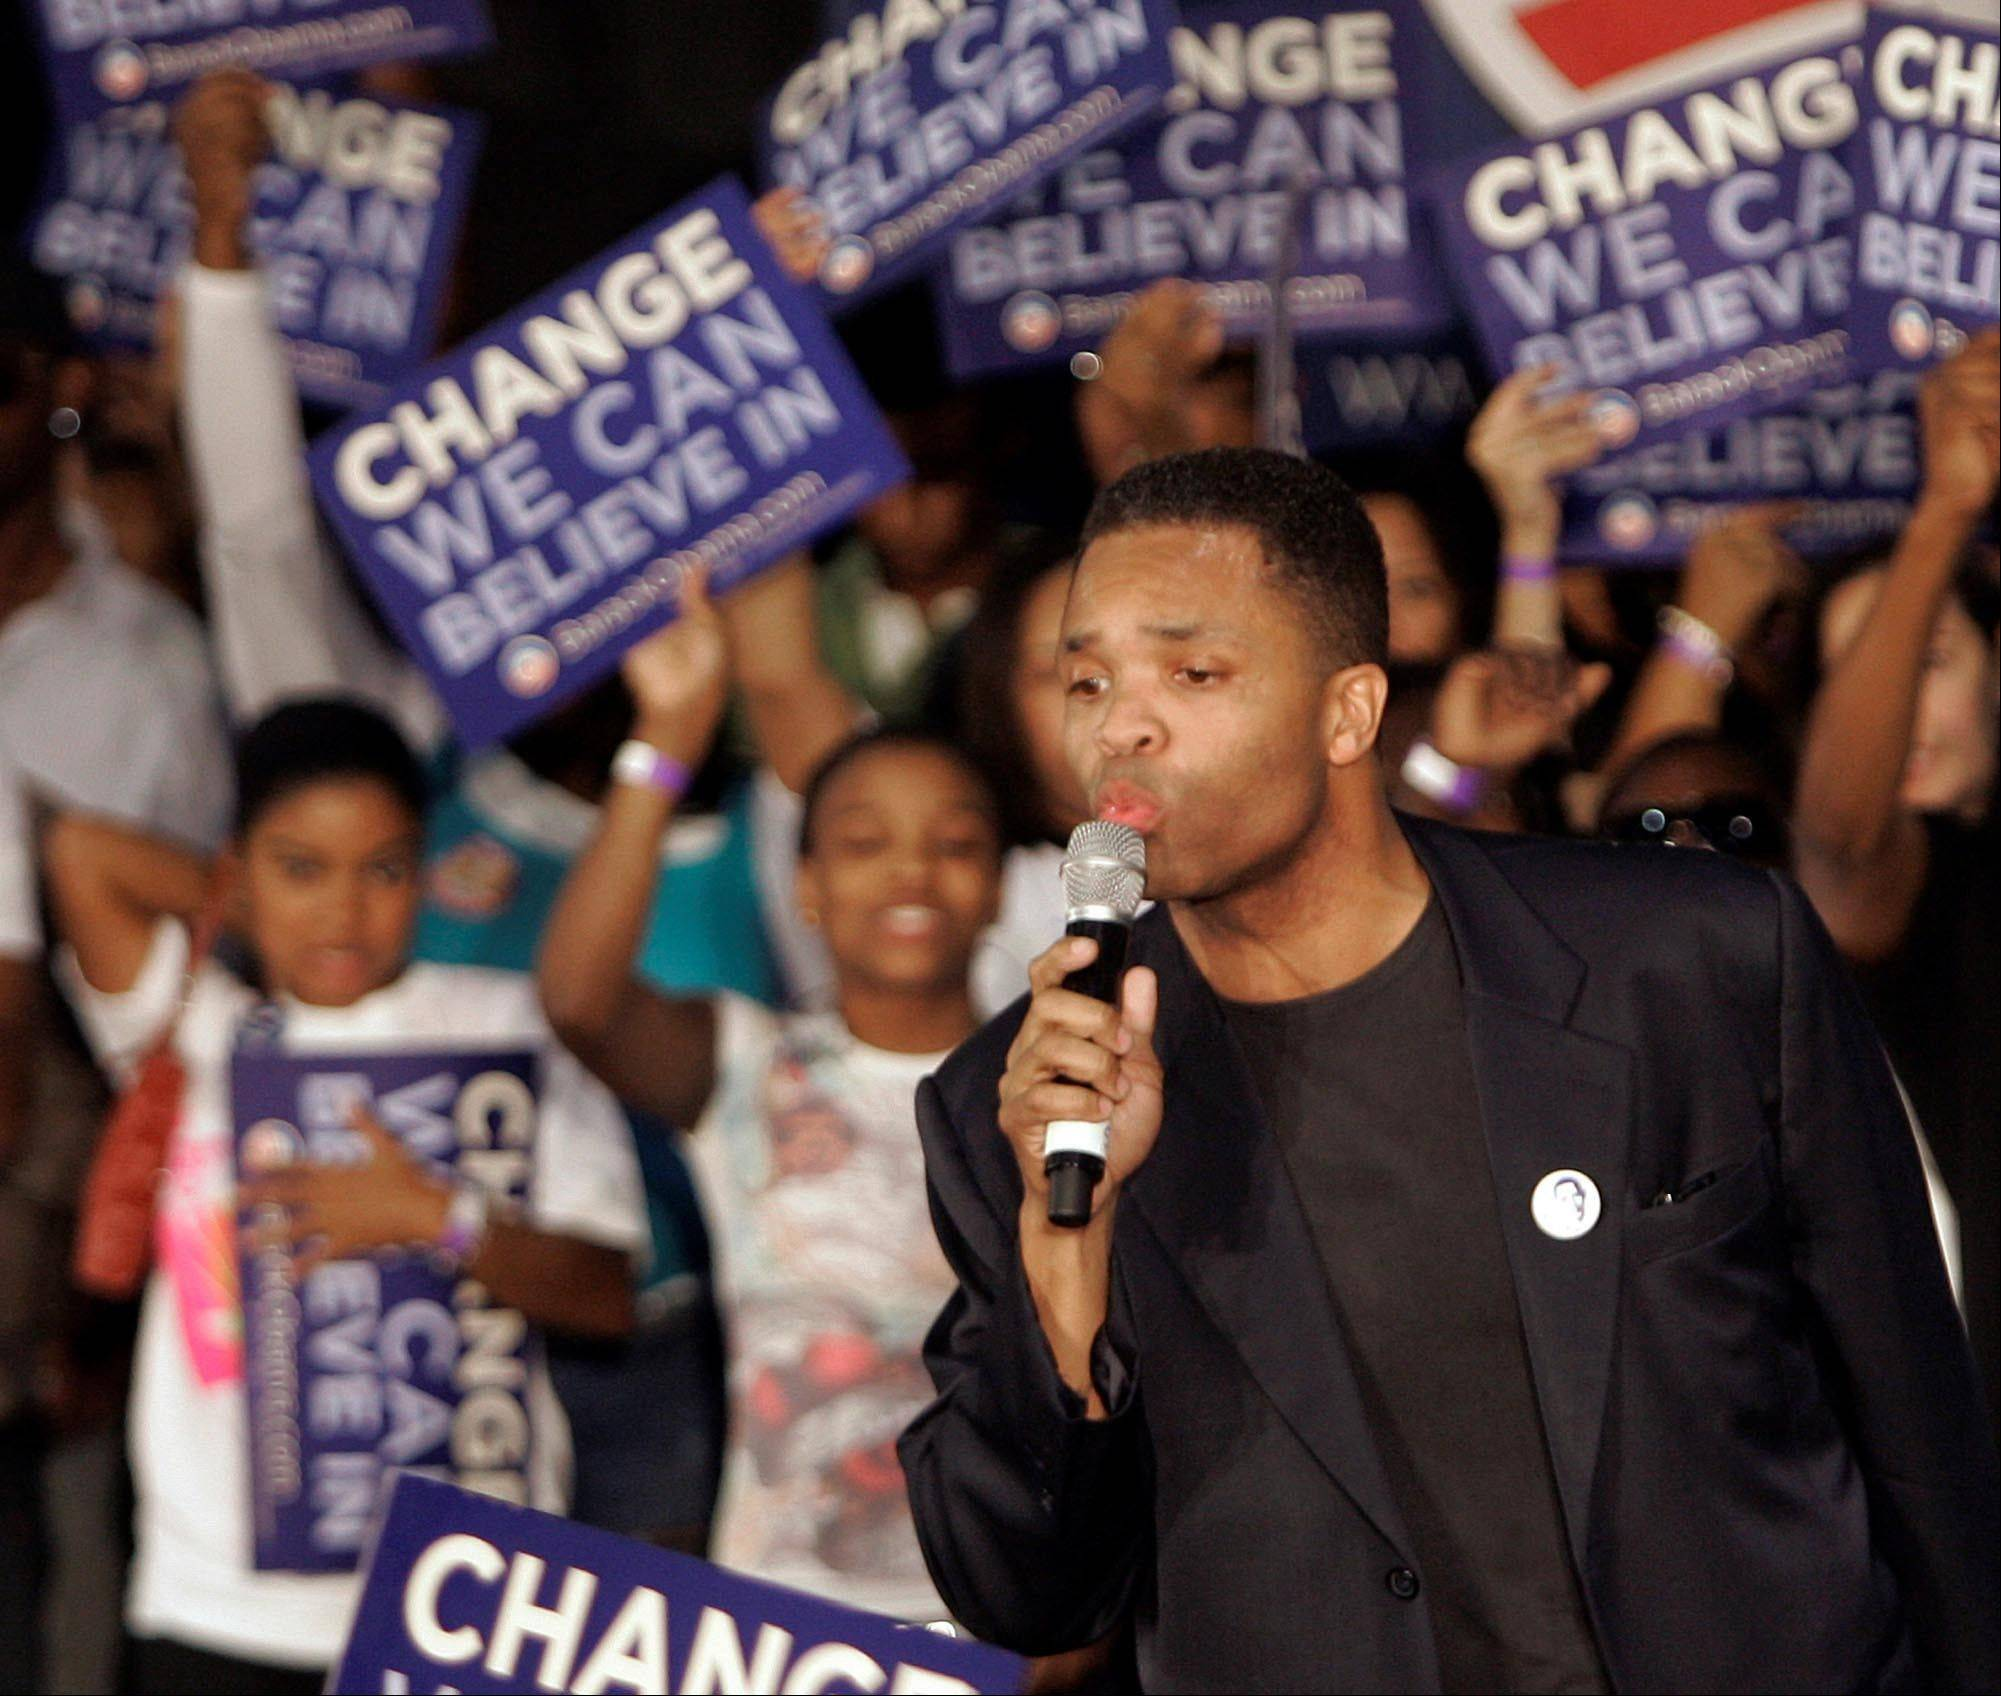 Former U.S. Rep. Jesse Jackson Jr. speaks to Barack Obama supporters during a 2008 campaign rally. Last month, he abandoned his congressional seat last week because of mental health problems and two federal investigations.